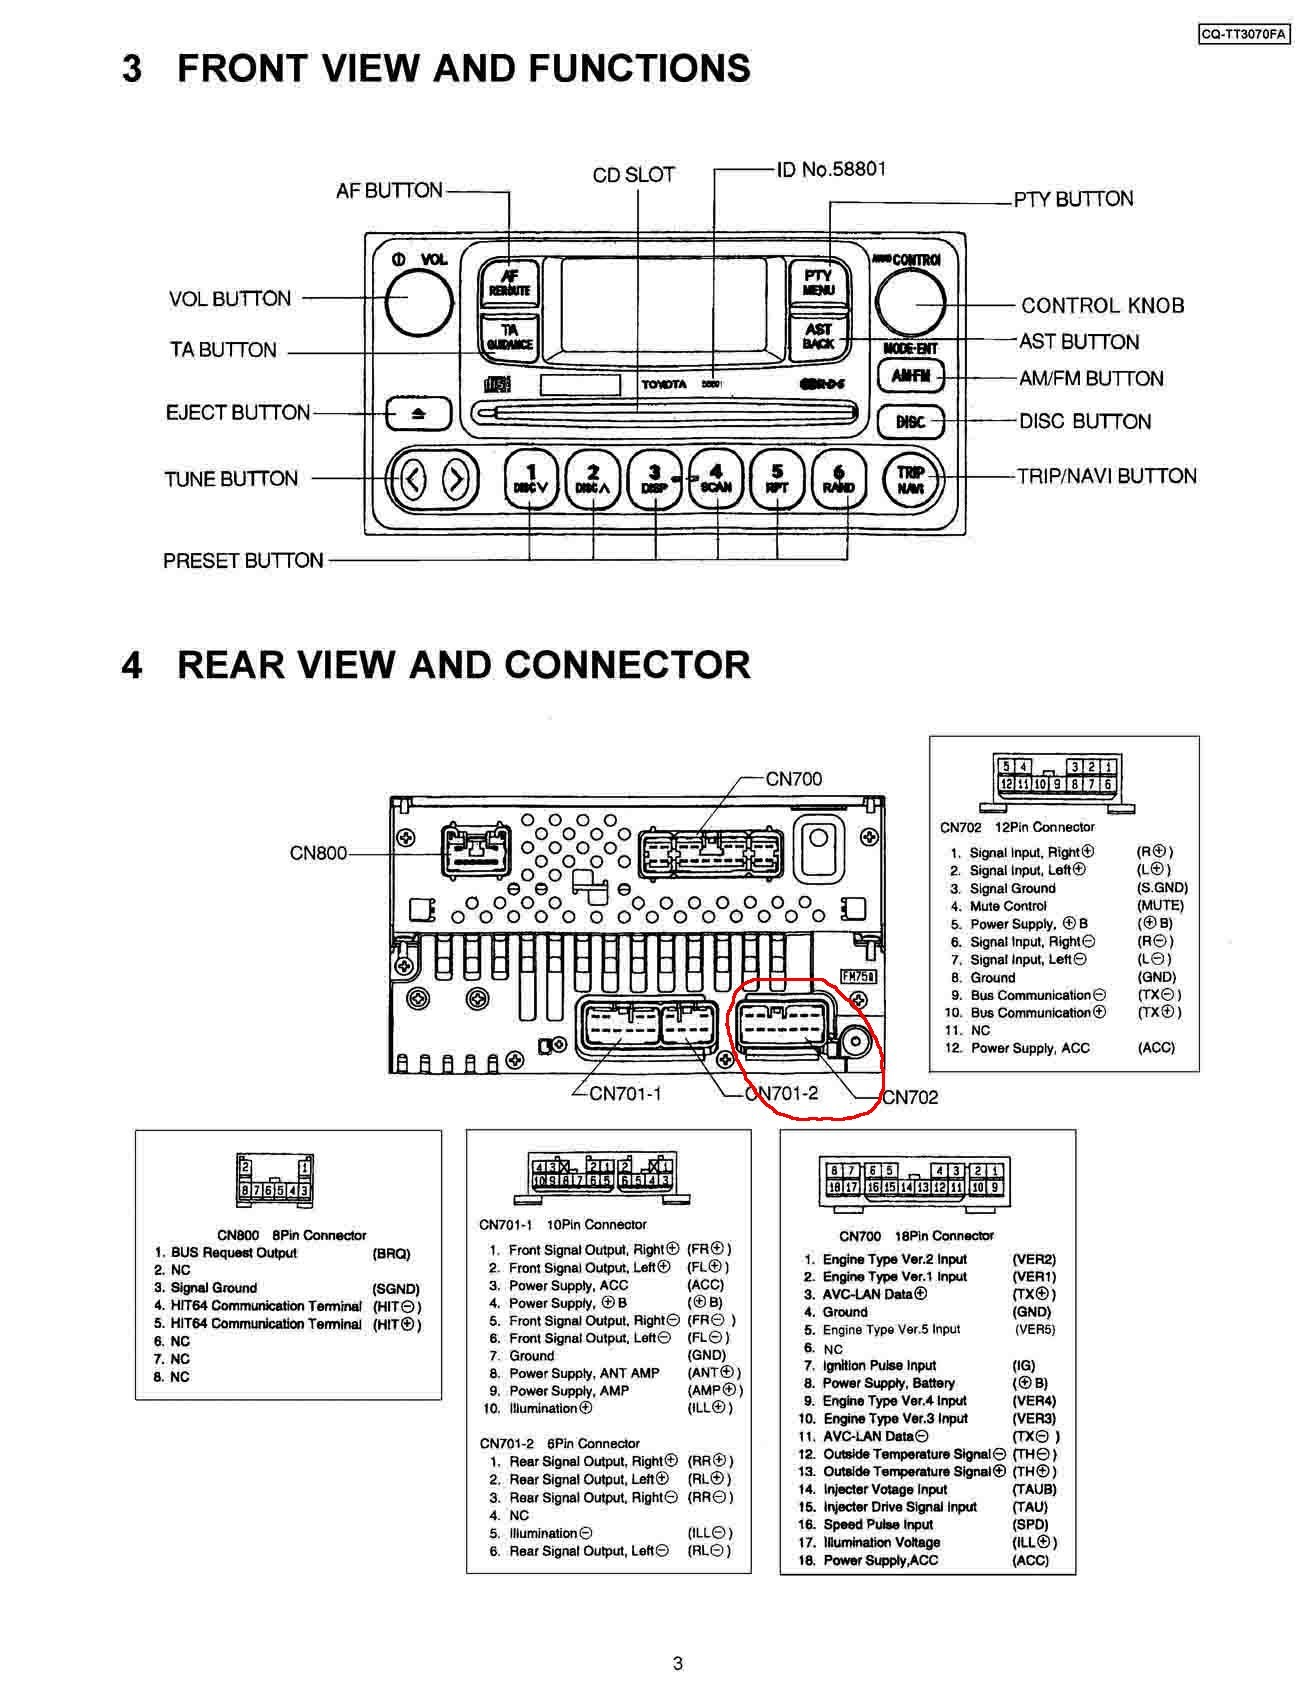 TOYOTA Car Radio Wiring Connector also Honda Car Radios in addition Honda Civic 2014 Wiring Diagram moreover TOYOTA Car Radio Wiring Connector in addition Toyota Car Stereo Wiring Diagram. on toyota lexus 86120 wiring diagram